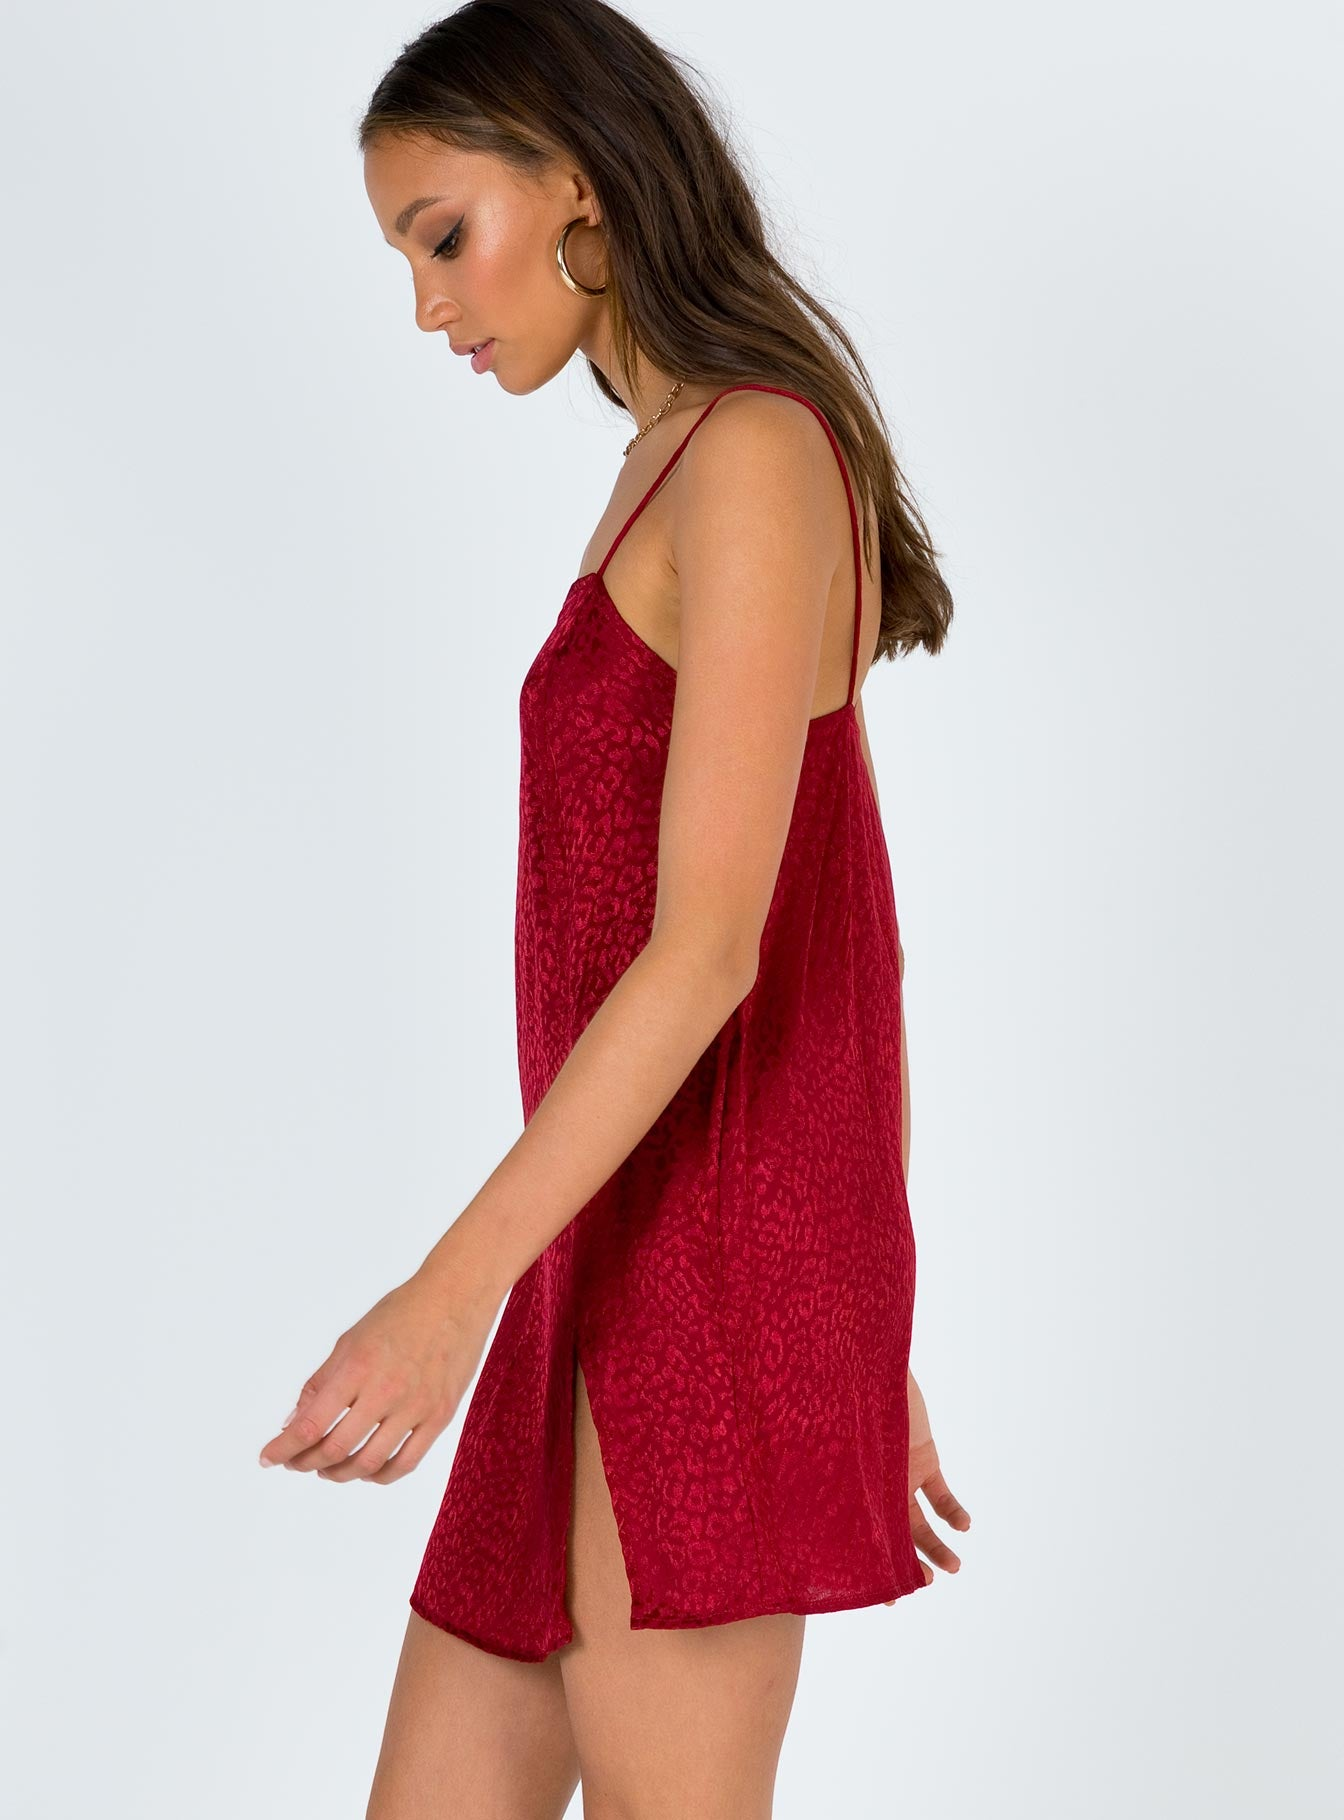 Motel Datista Slip Dress Satin Cheetah Raspberry